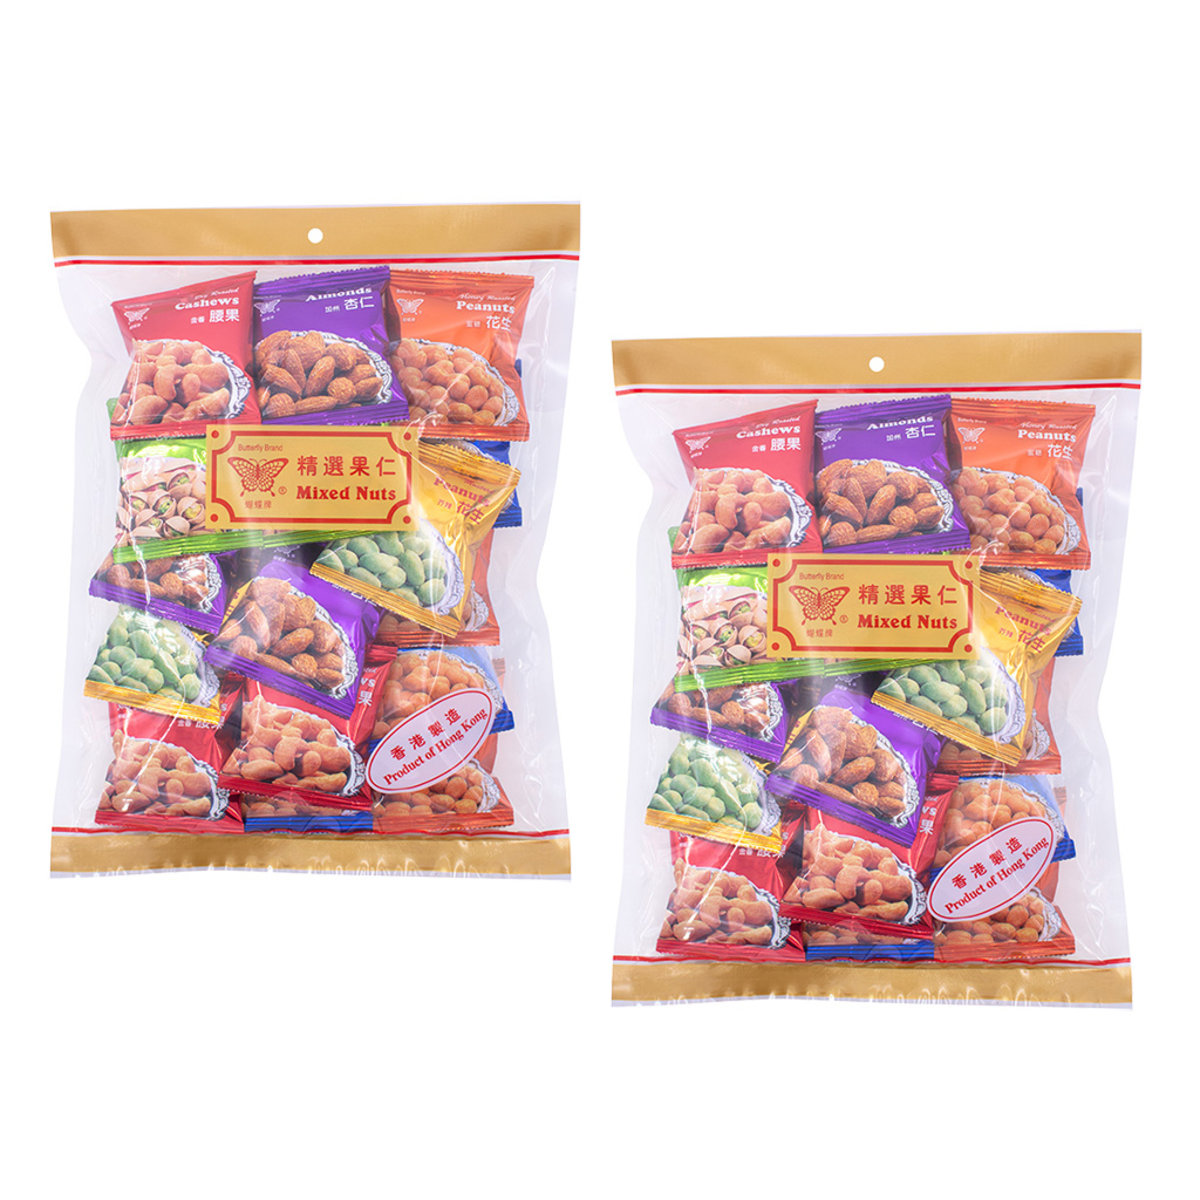 Mixed Nuts [2 bags]